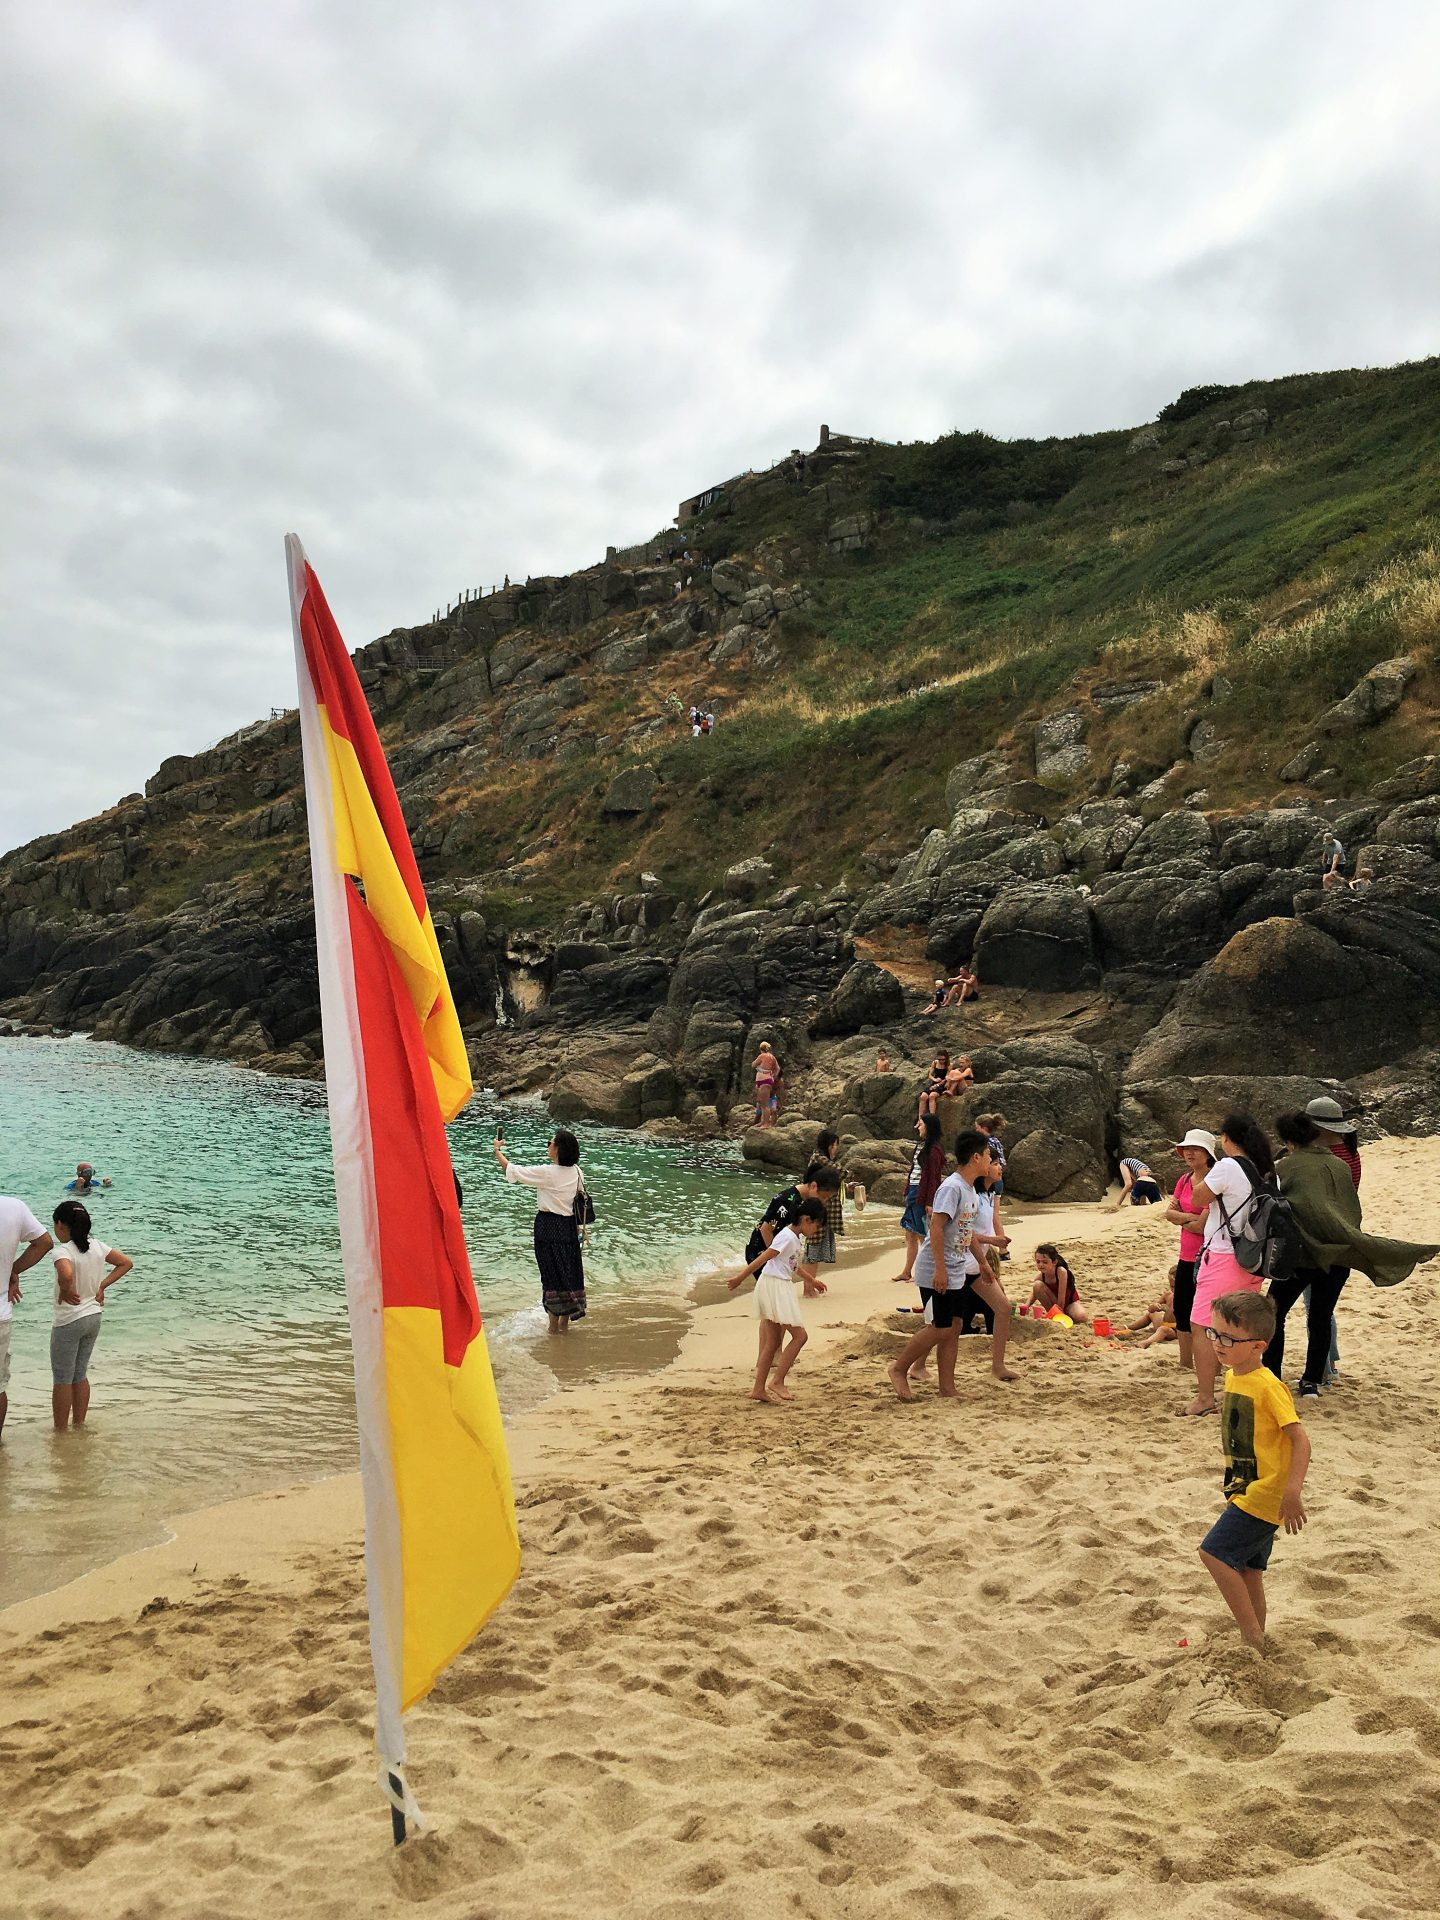 Porthcurno Beach with the steep climb from the Minack Theatre in the background, Cornwall